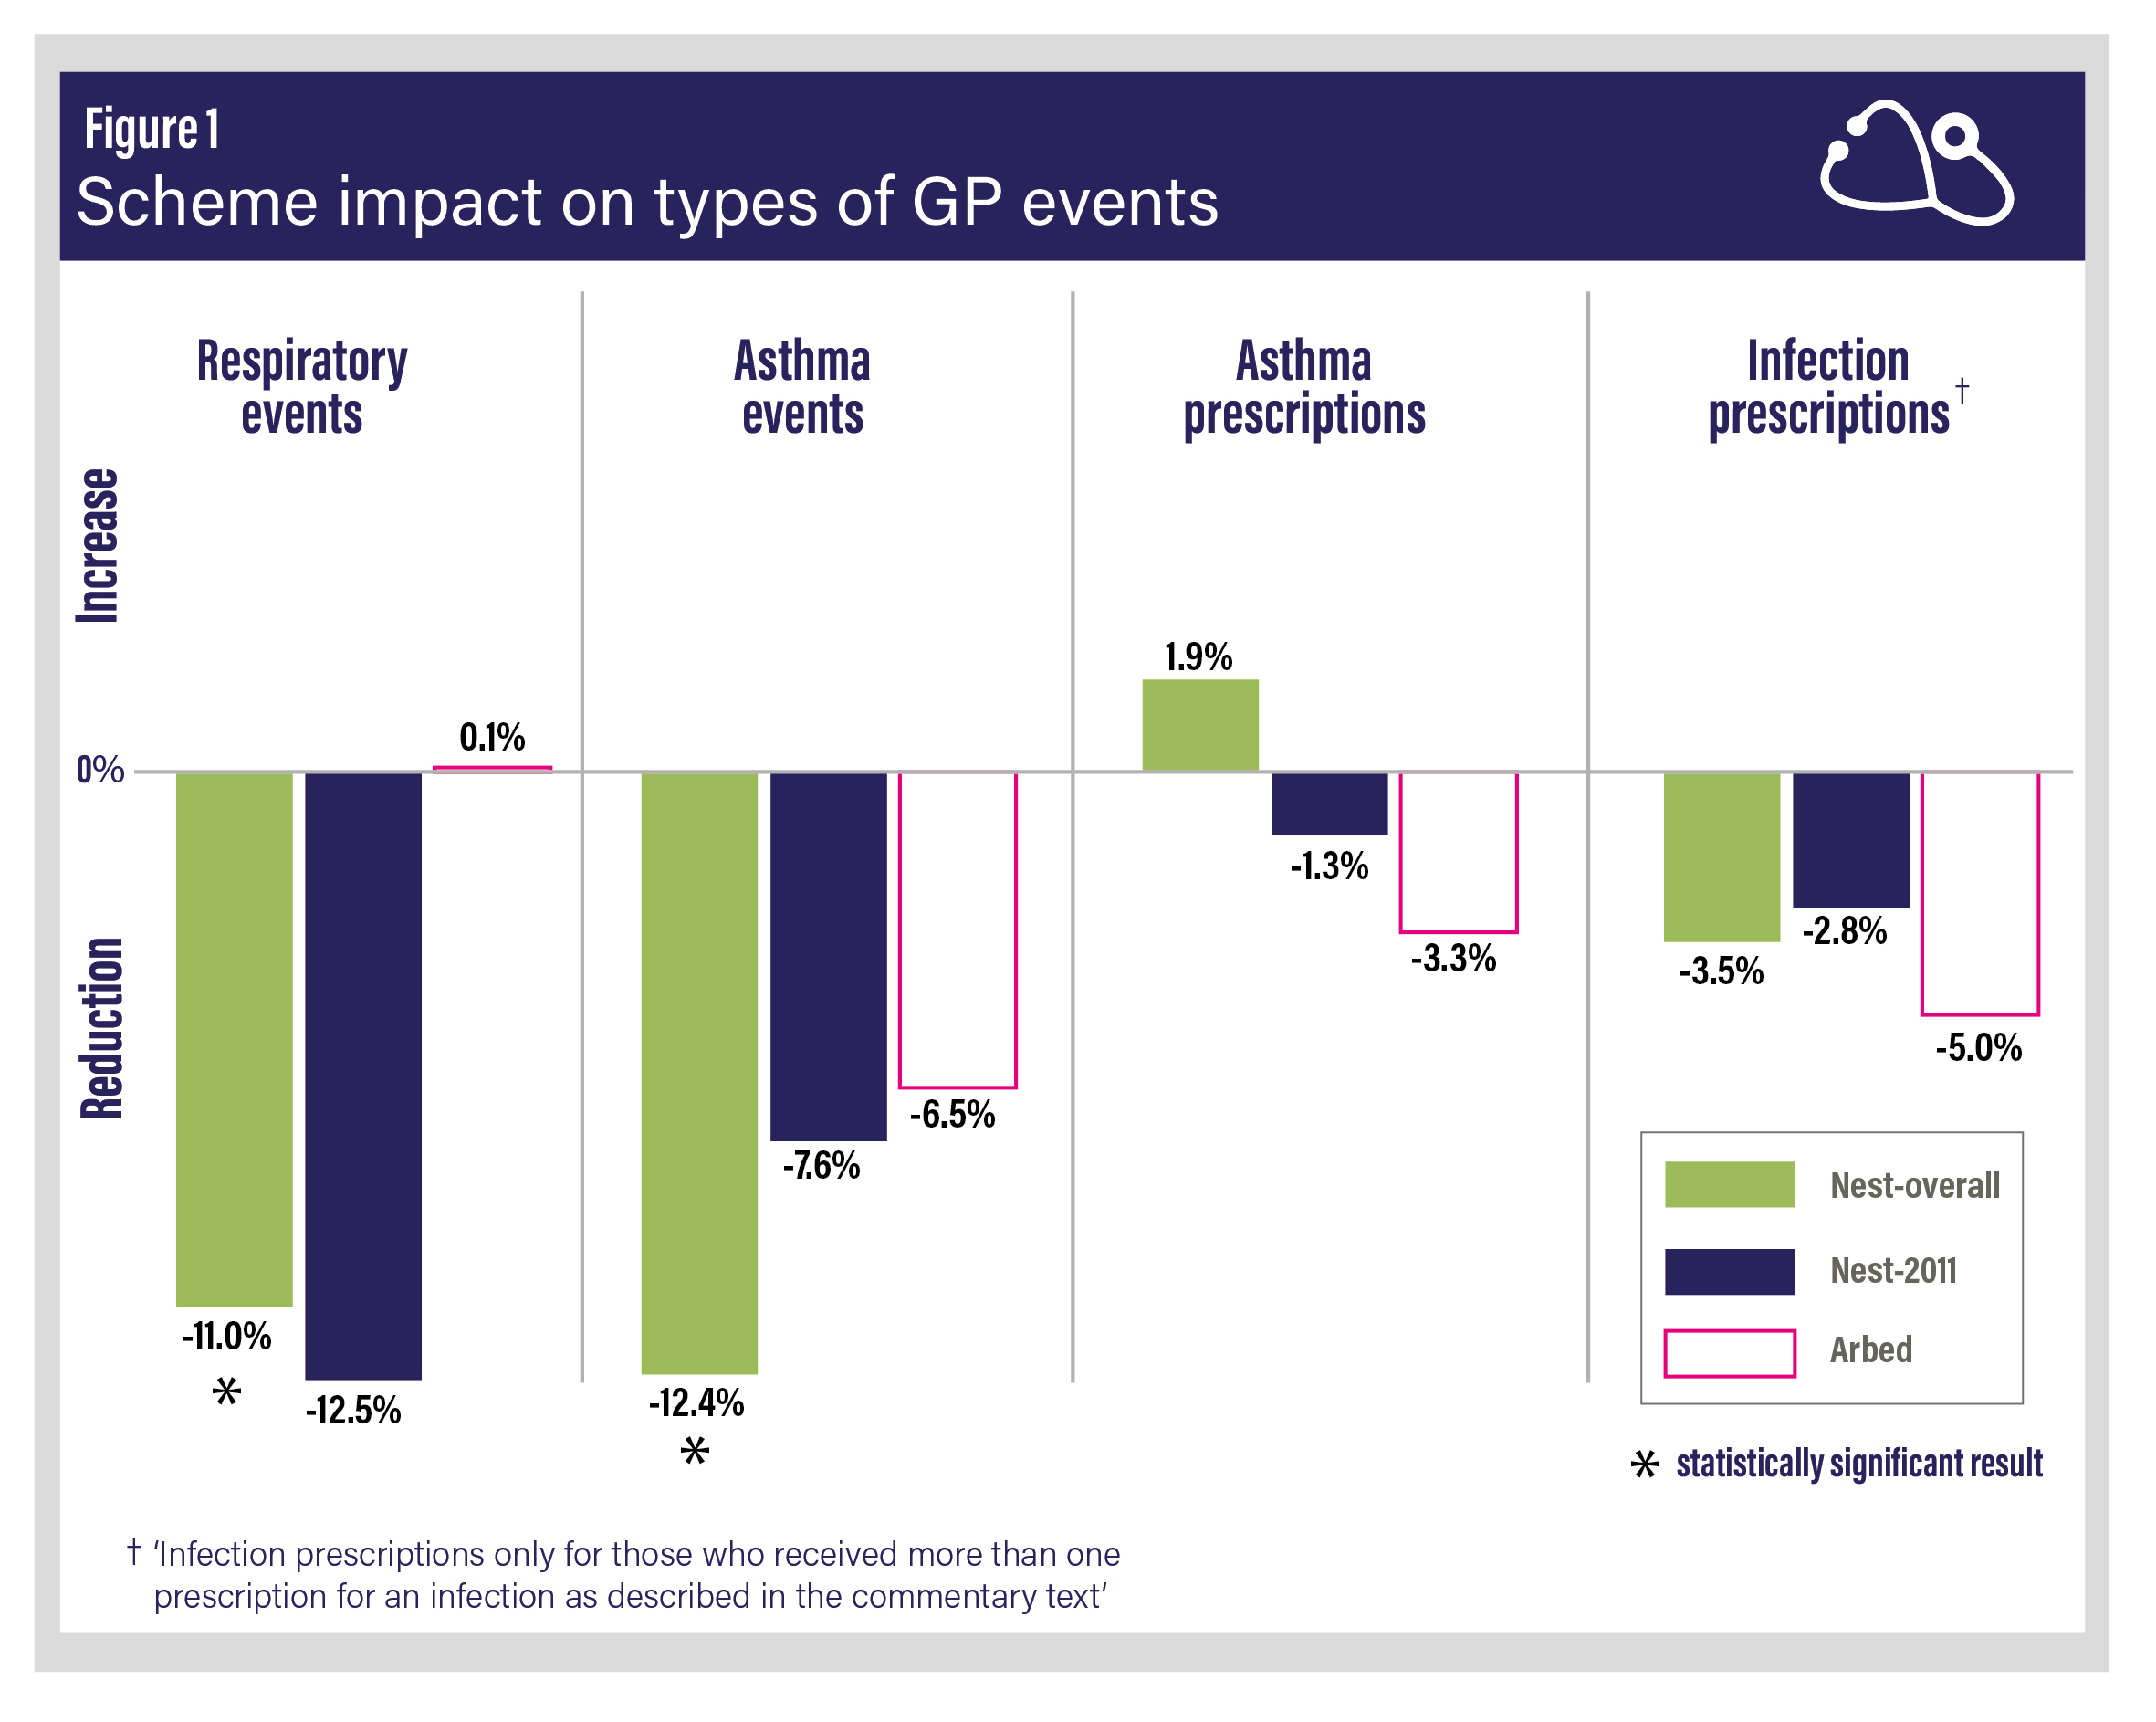 Figure 1: Scheme impact on types of GP events.